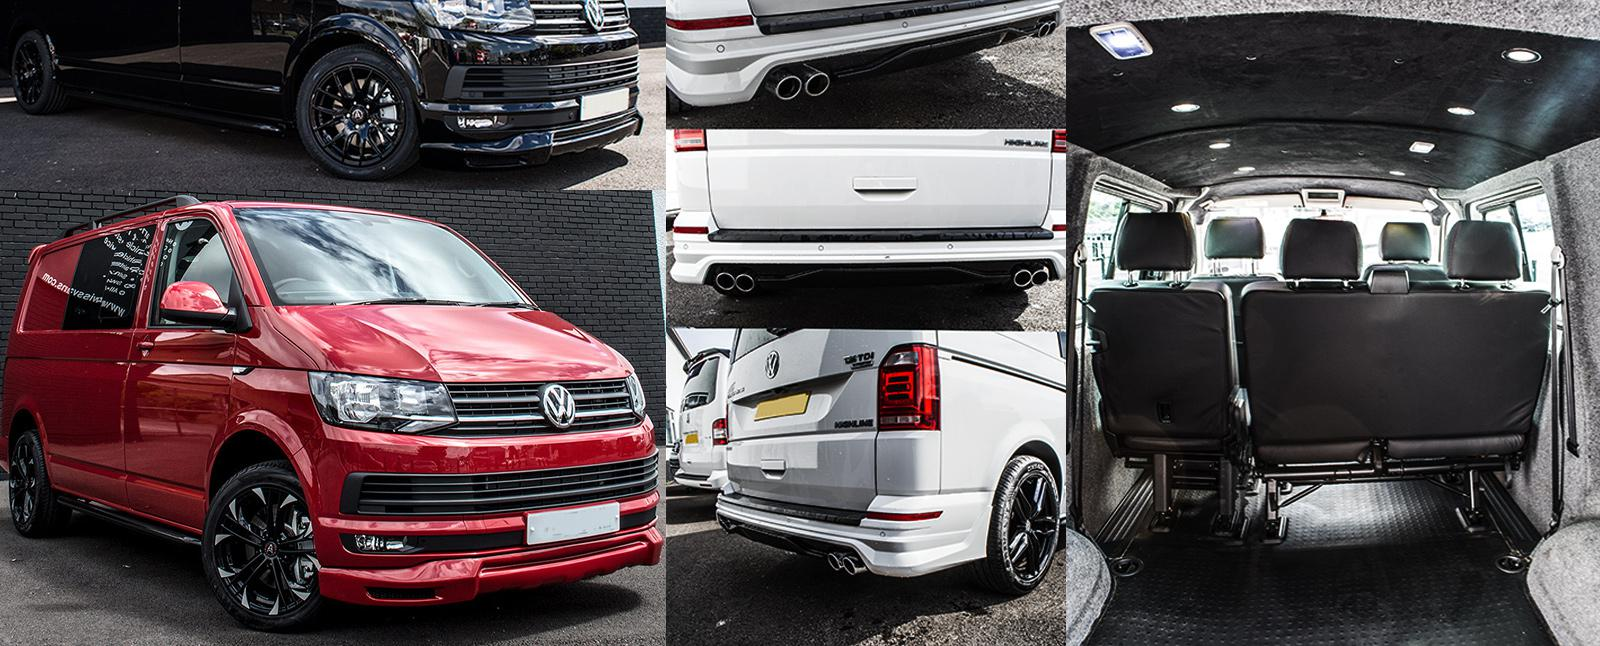 VW Transporter T6 Upgrades and mods